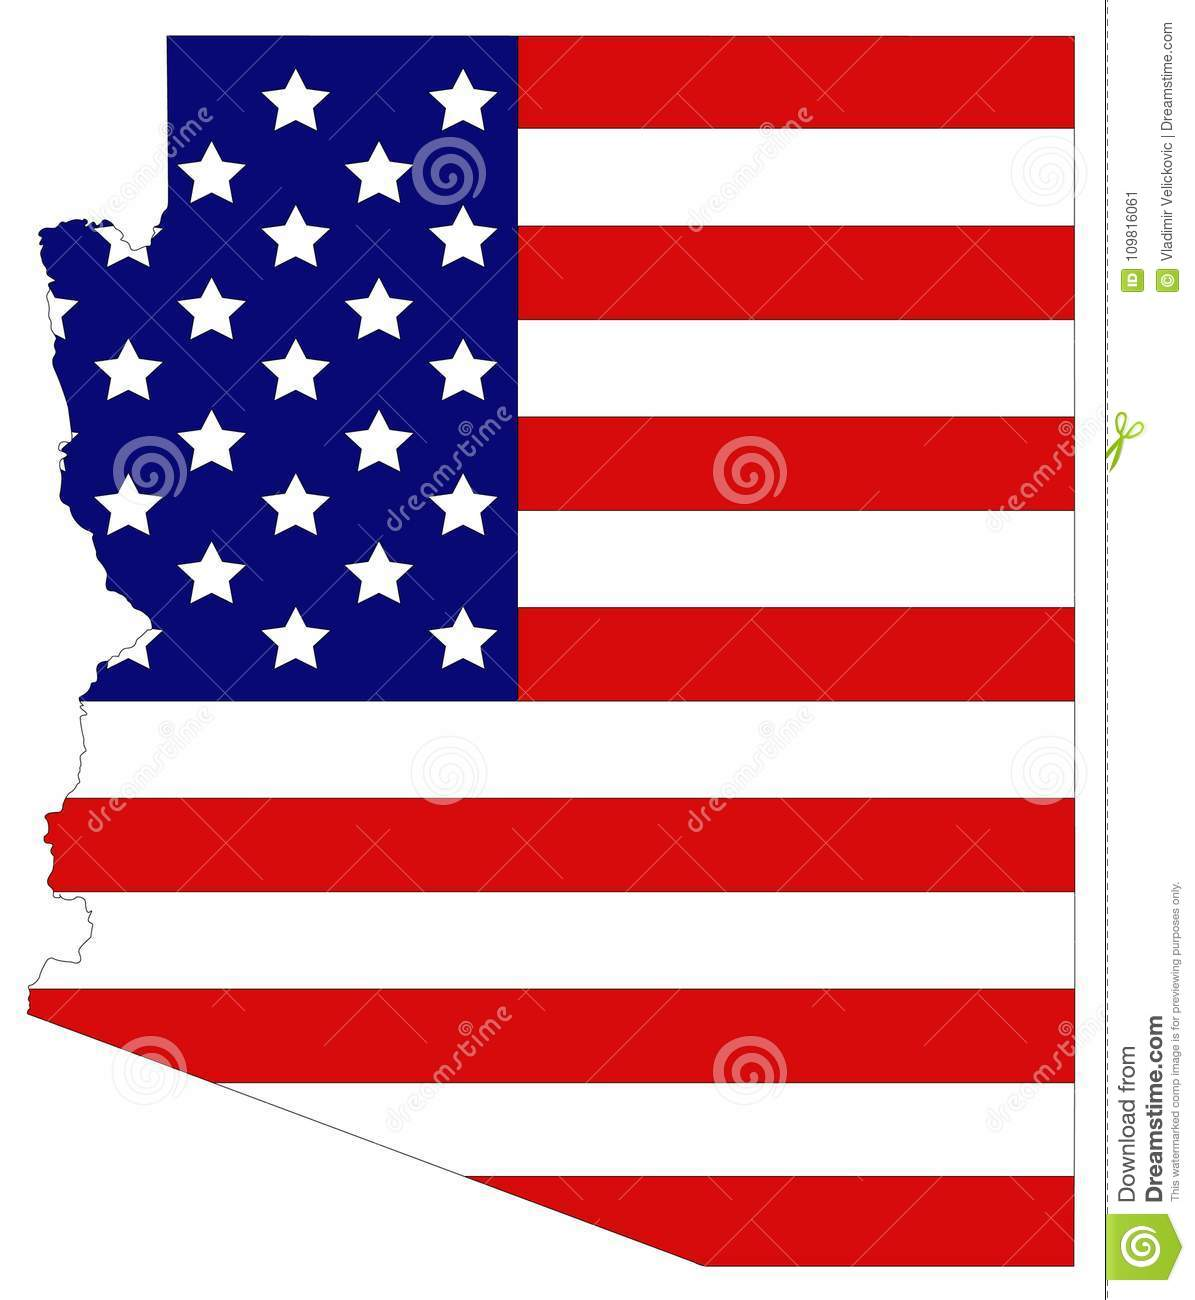 Map Of Usa Arizona.Arizona Map With Usa Flag State In The Southwestern Region Of The